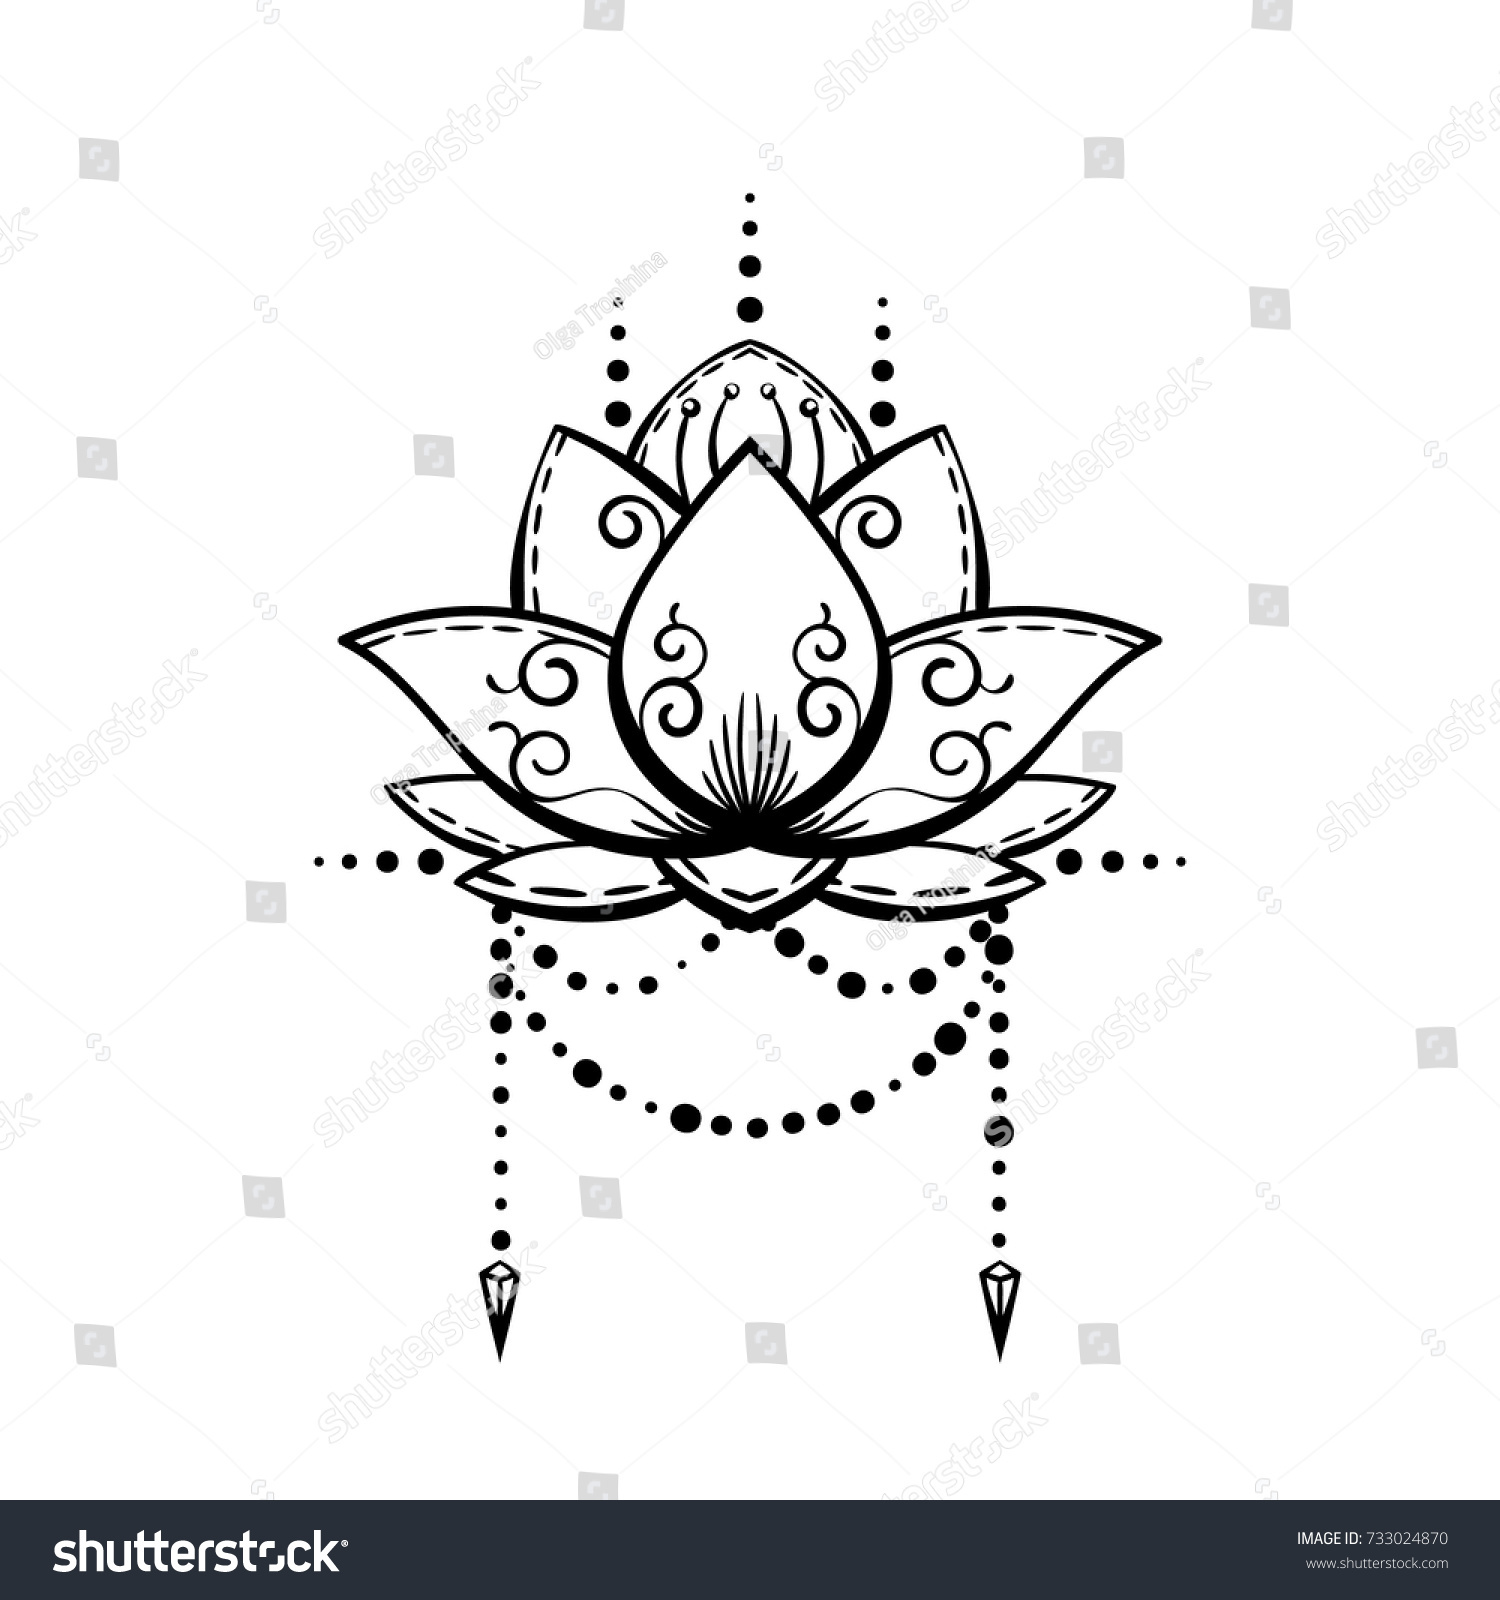 Lotus flower tattoo hand drawn isolated stock vector royalty free lotus flower tattoo hand drawn isolated vector magic symbol design element izmirmasajfo